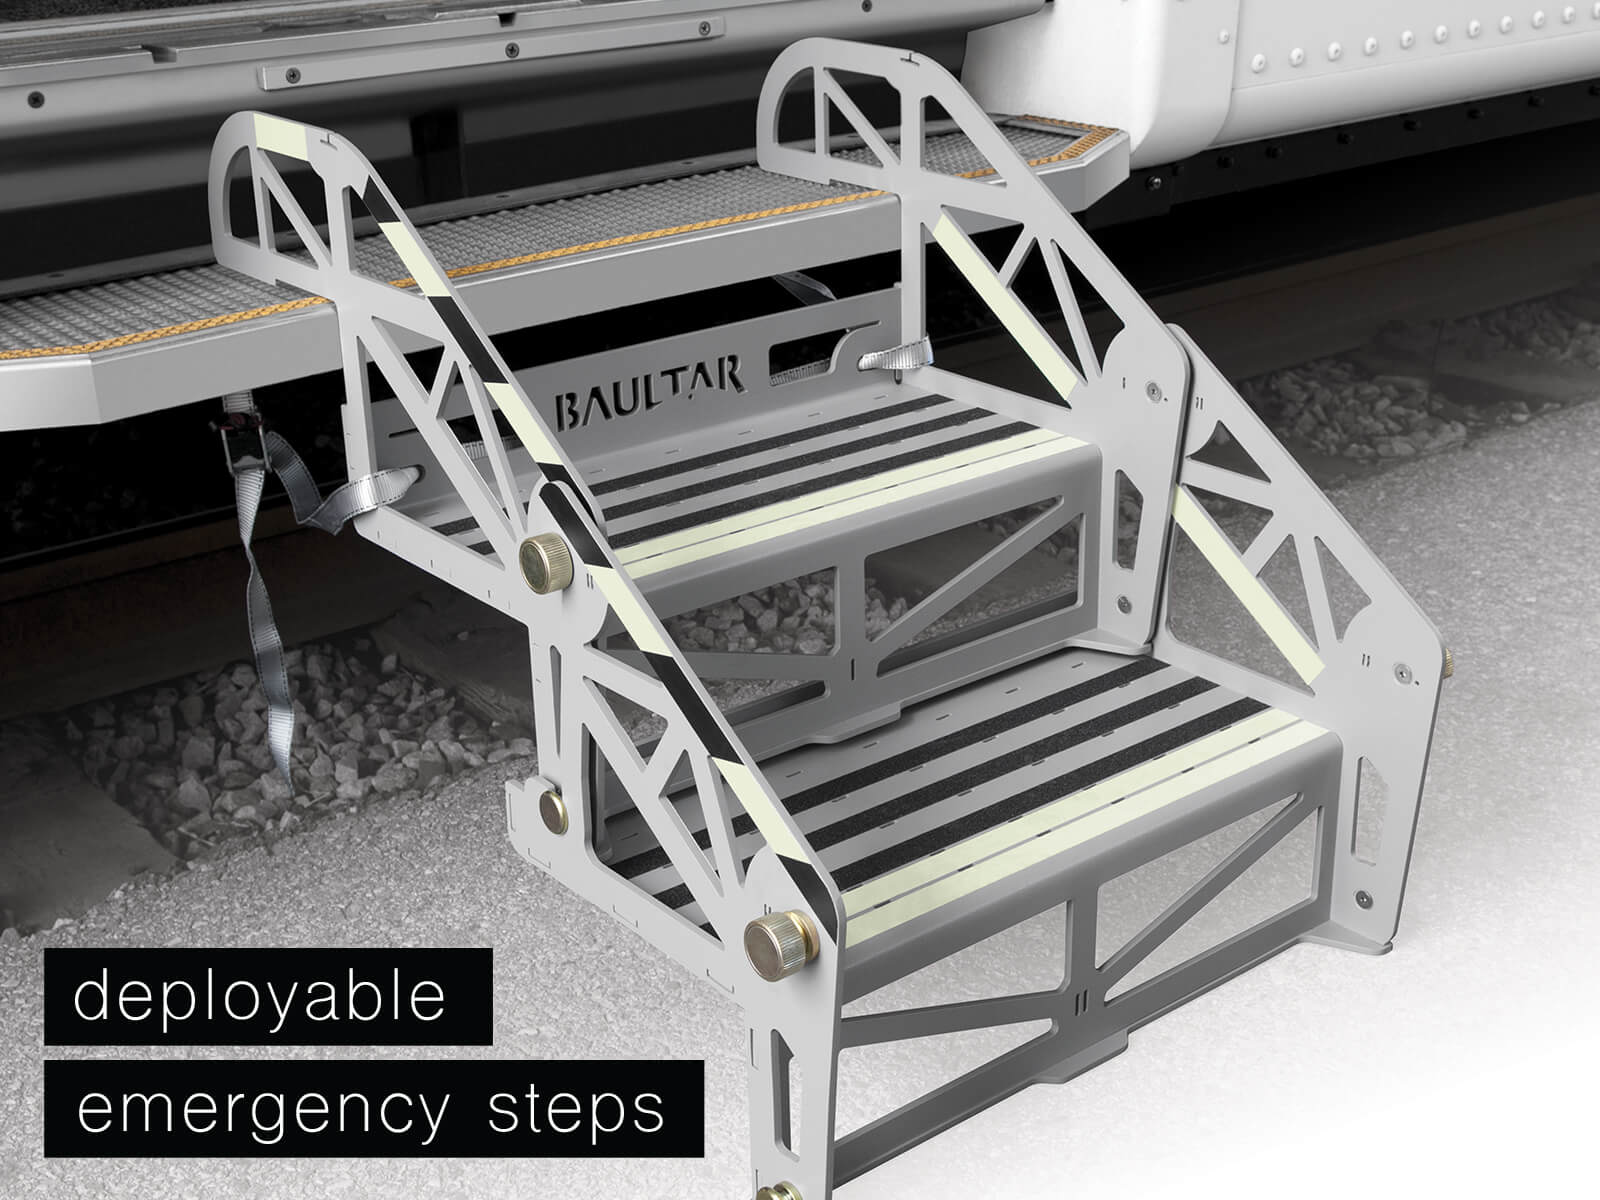 Baultar's Deployable Emergency Steps